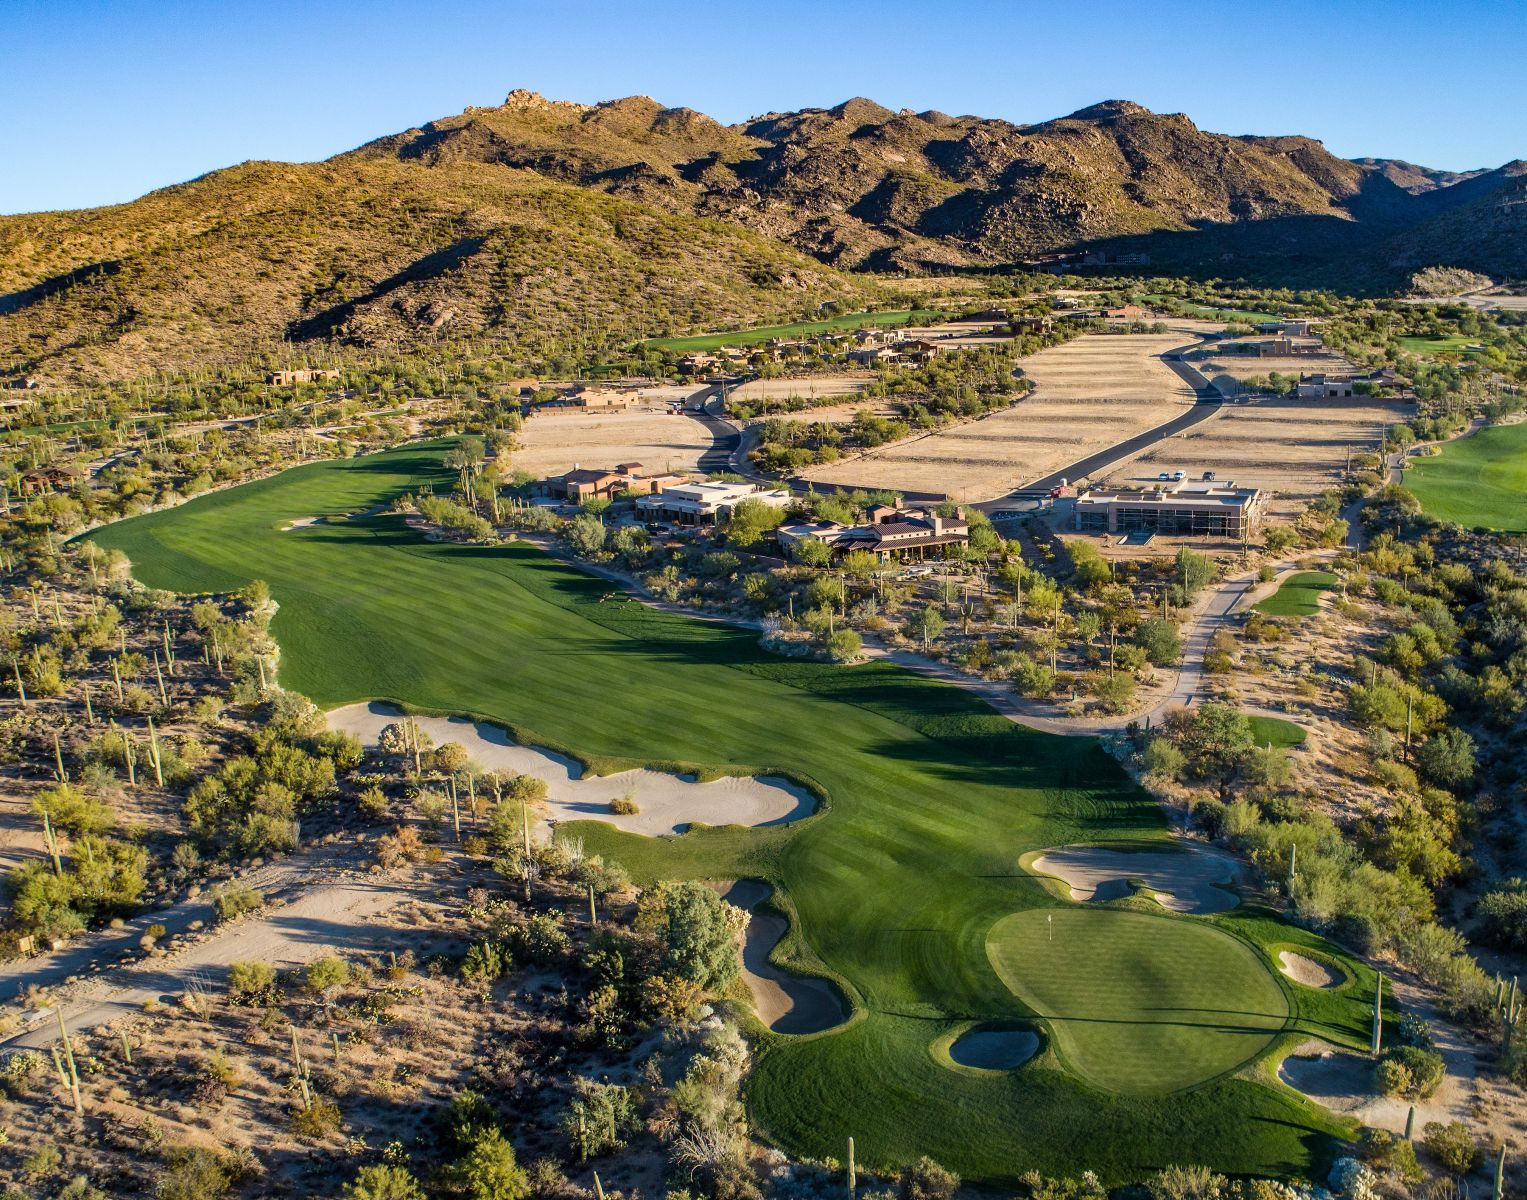 Aerial view of hole 2 on the Wild Burro course